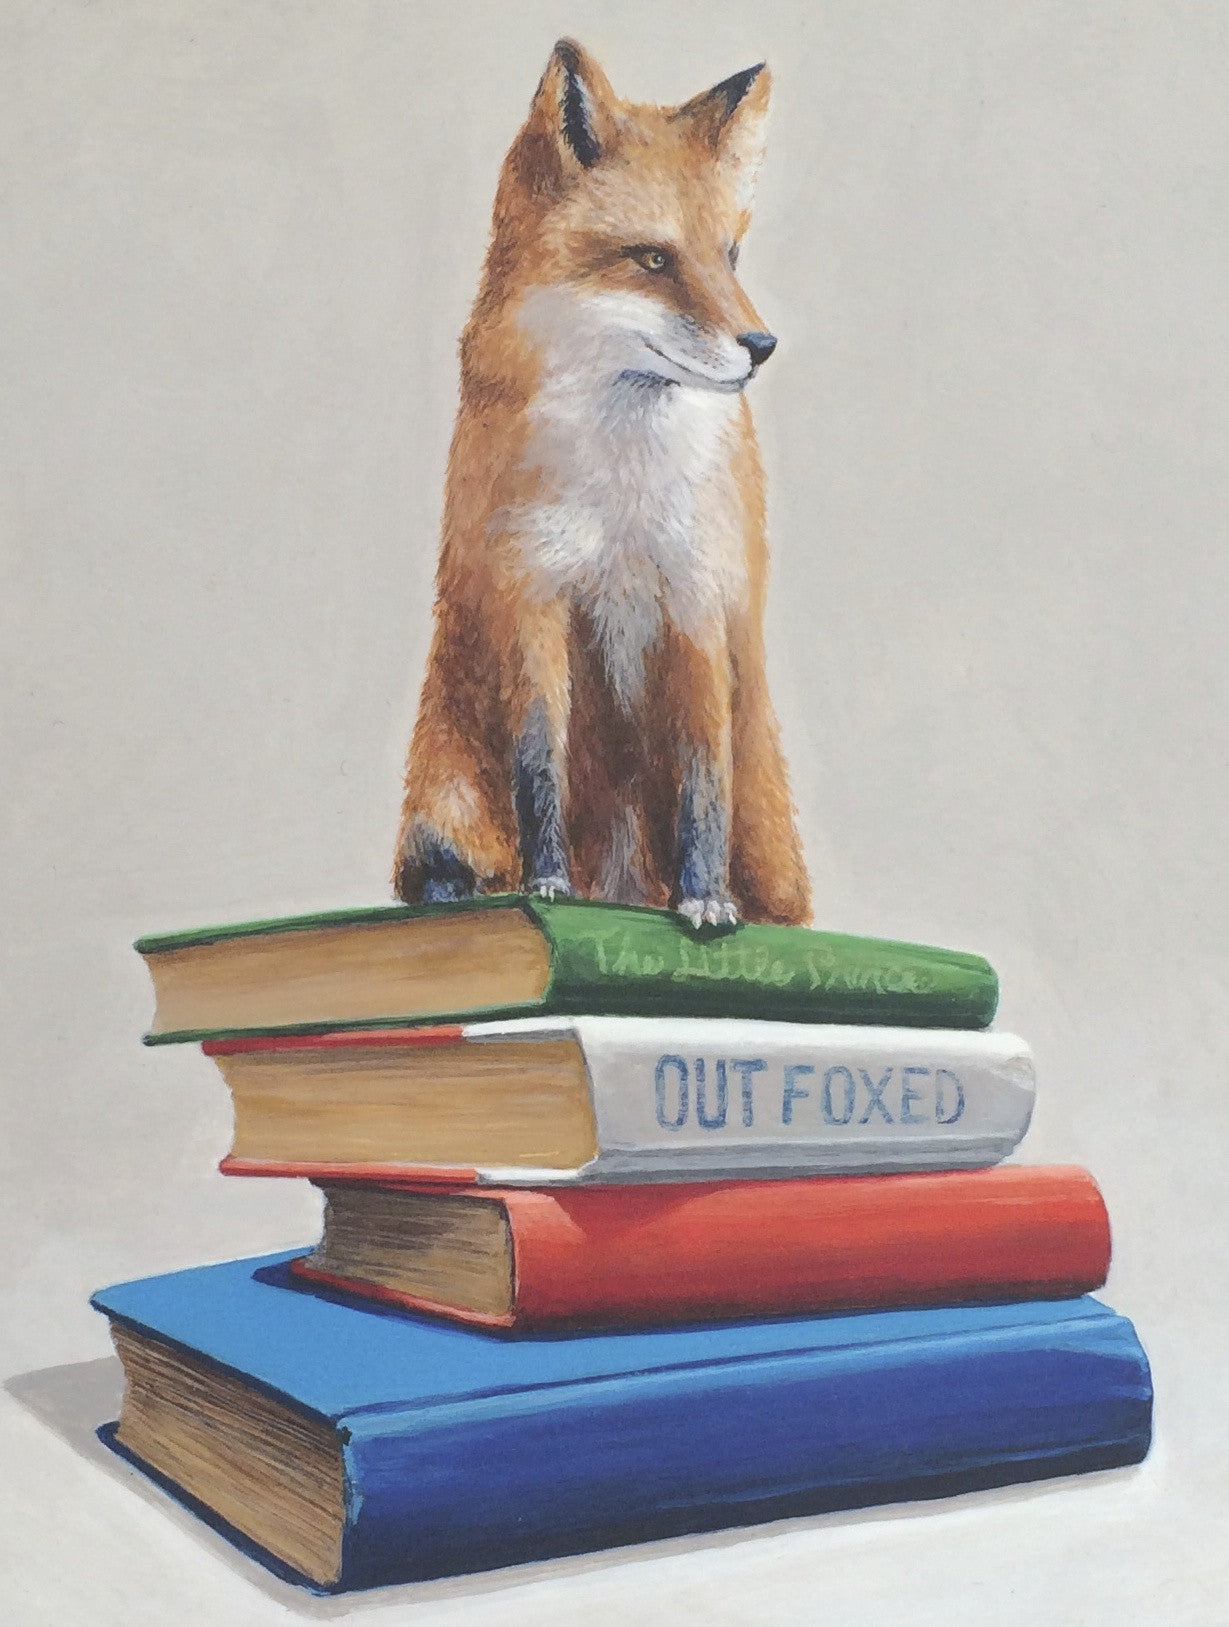 Out Foxed on paper